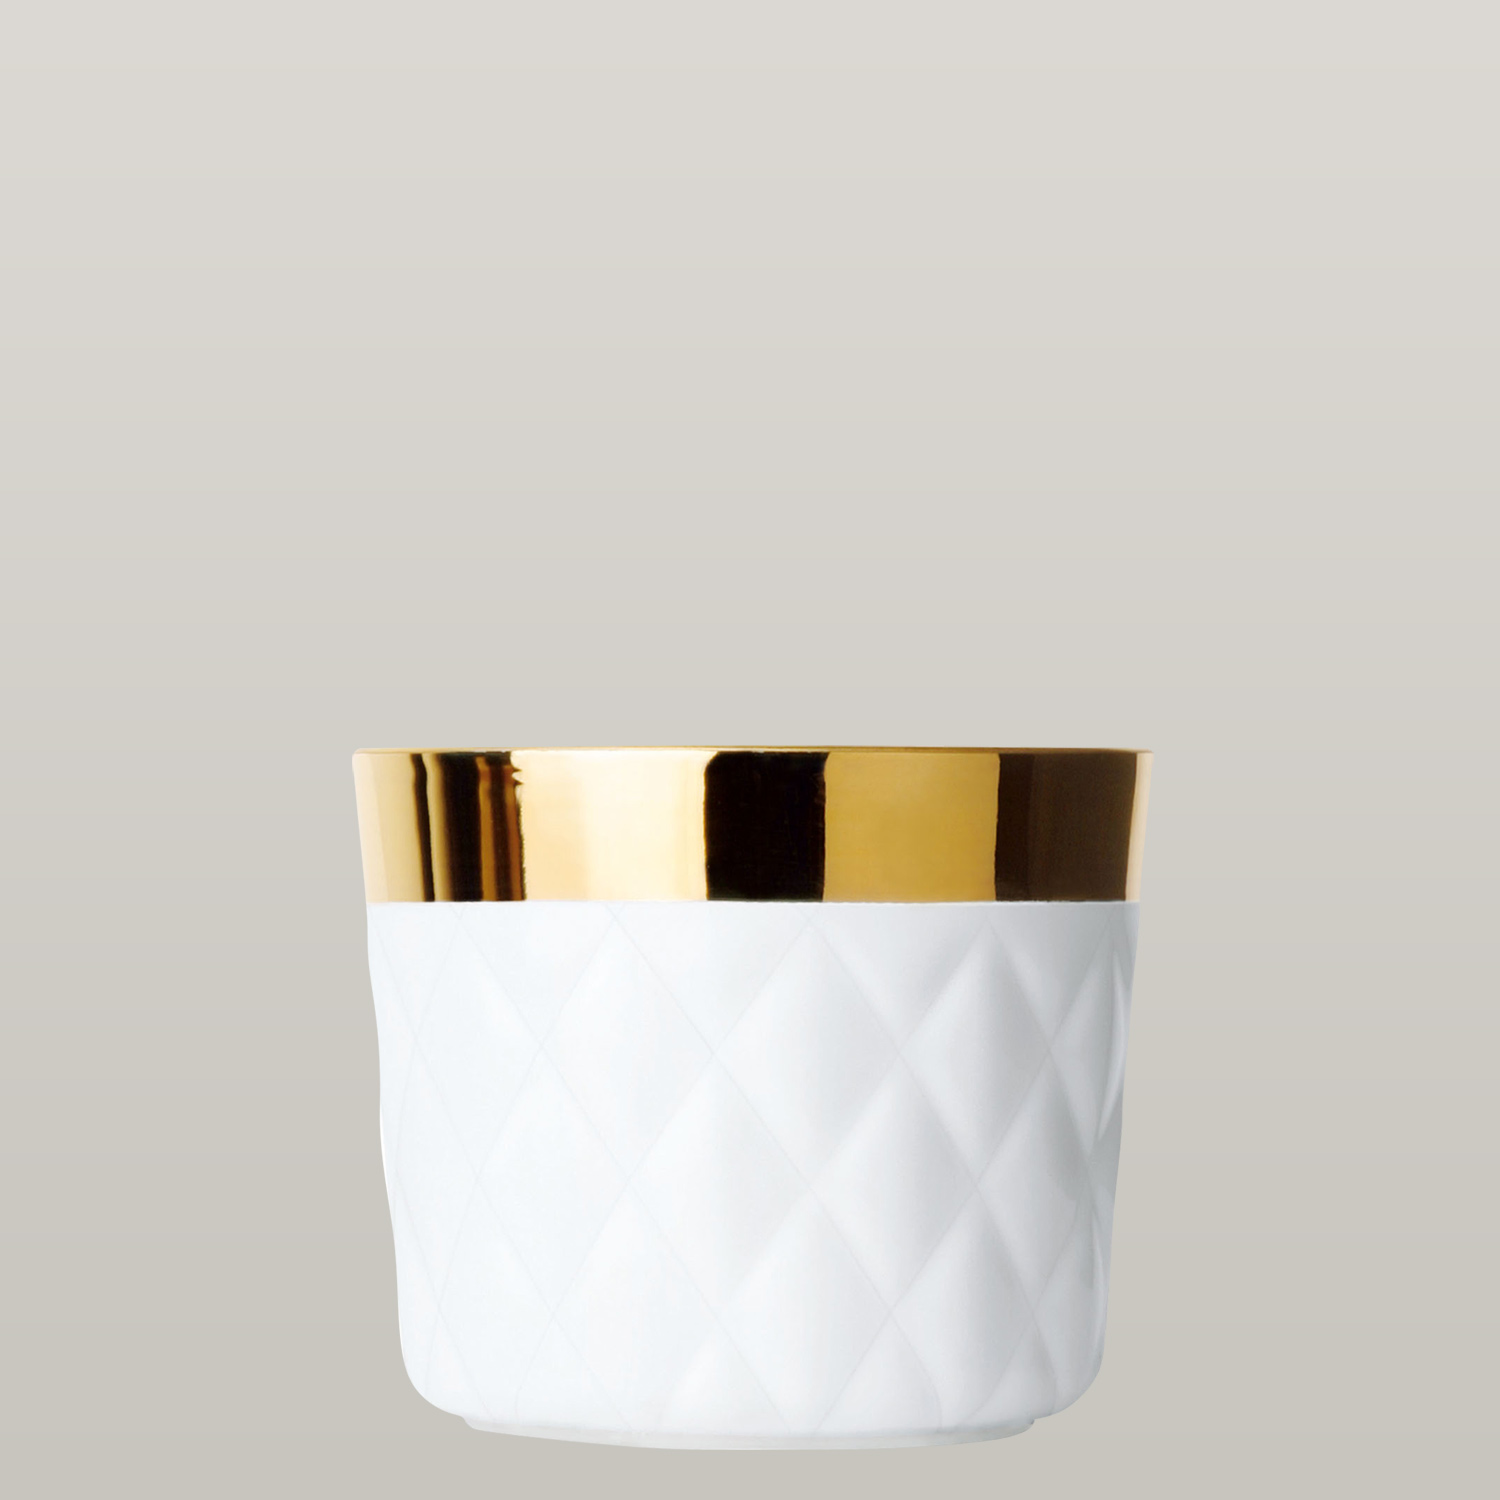 Becher White, Cushion, Kissenrelief